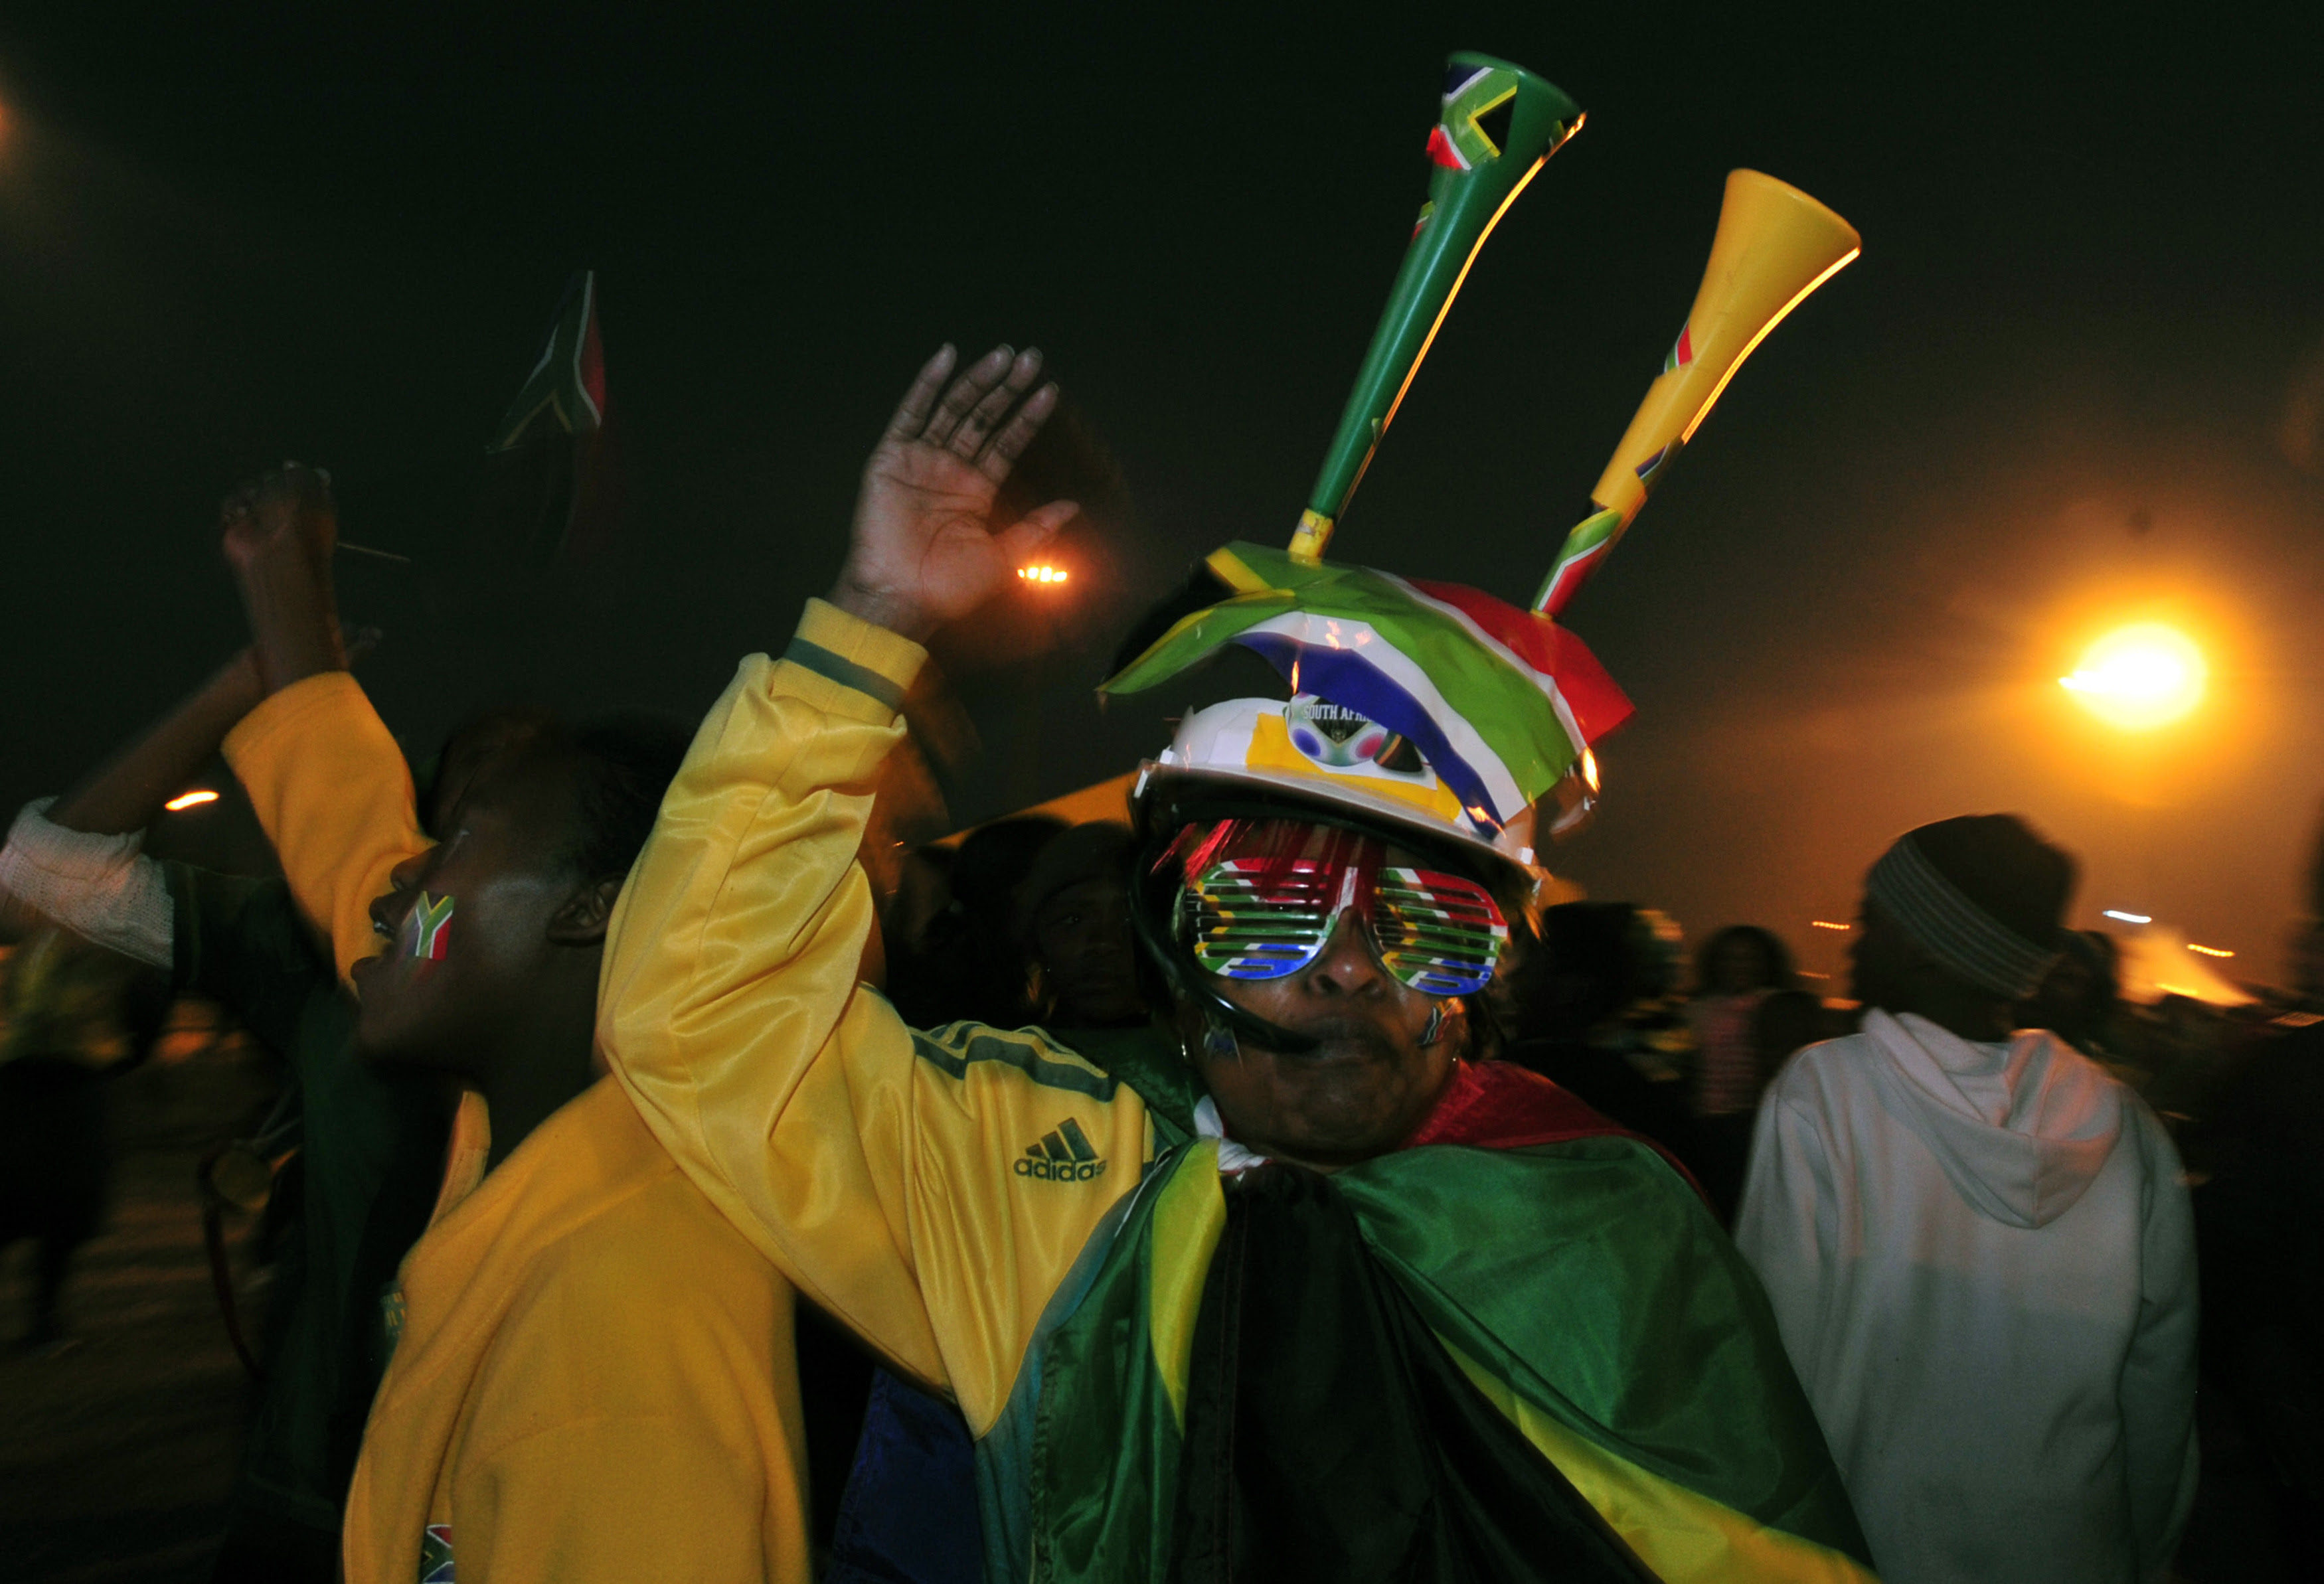 http://upload.wikimedia.org/wikipedia/commons/2/24/Watching_South_Africa_%26_France_match_at_World_Cup_2010-06-22_in_Soweto_17.jpg